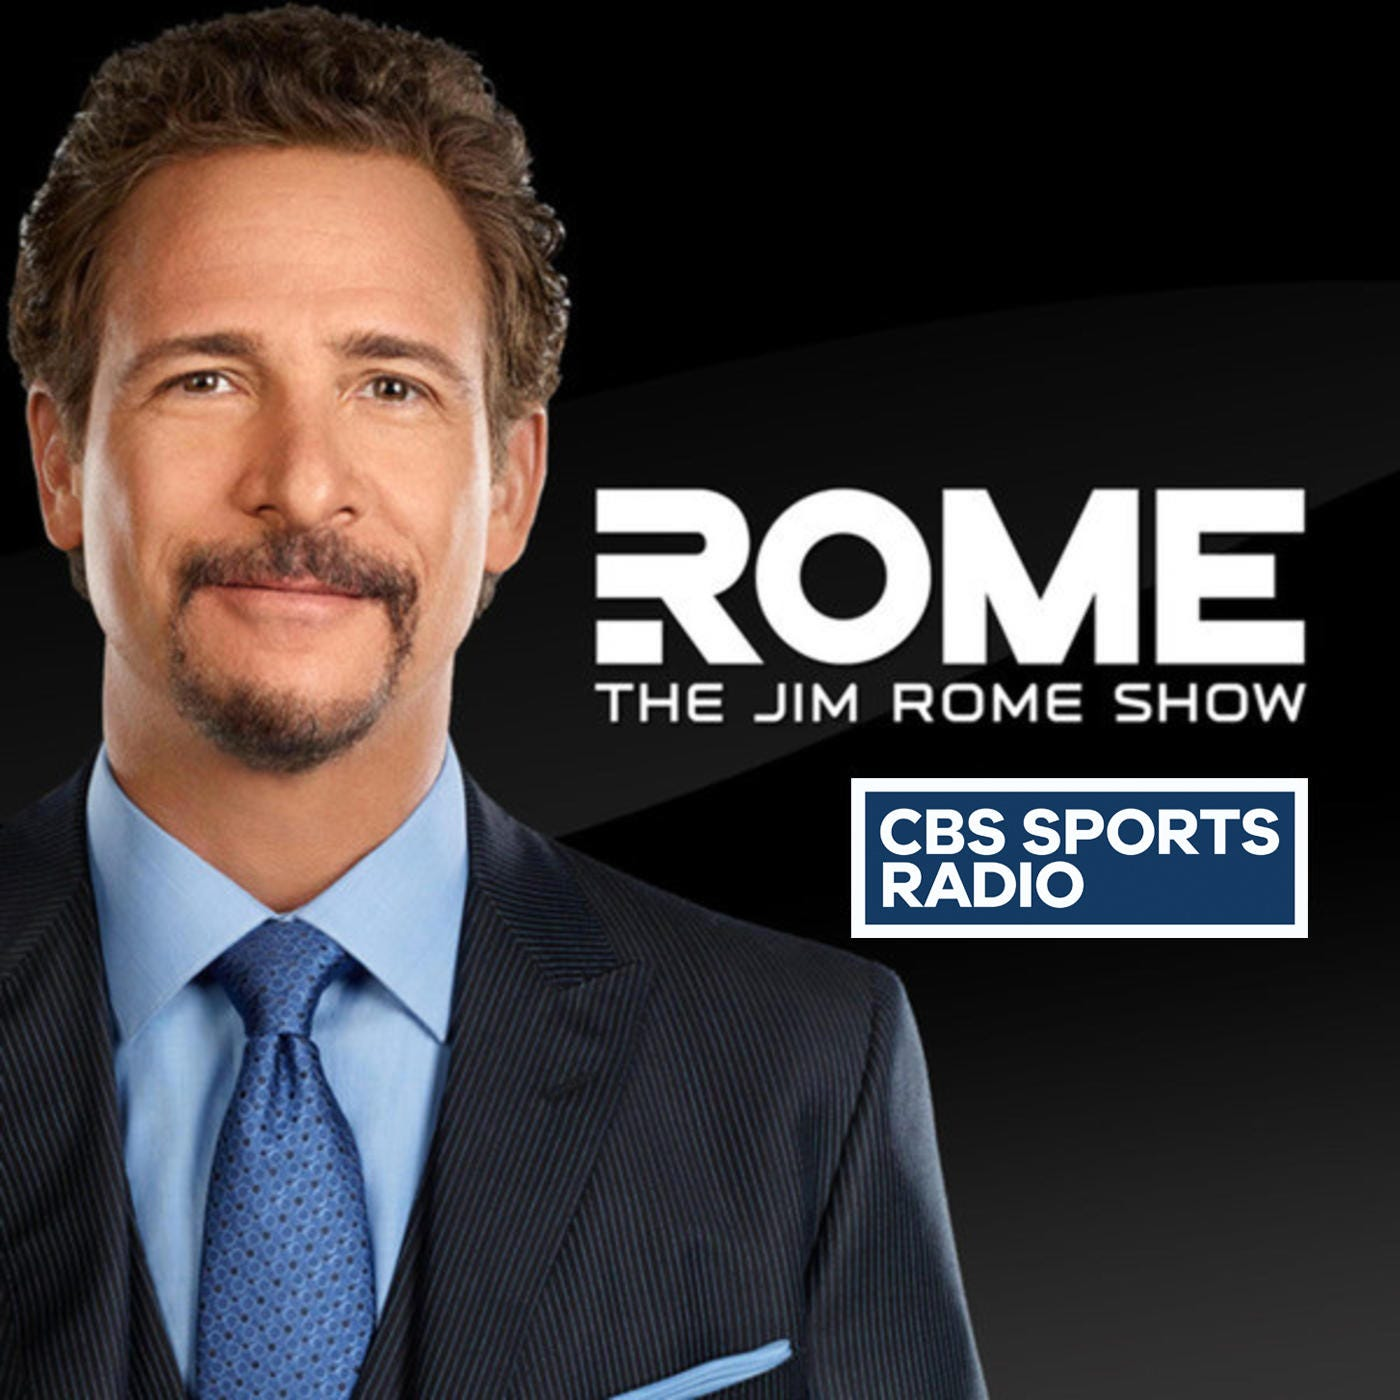 The Jim Rome Show: The Week That Was